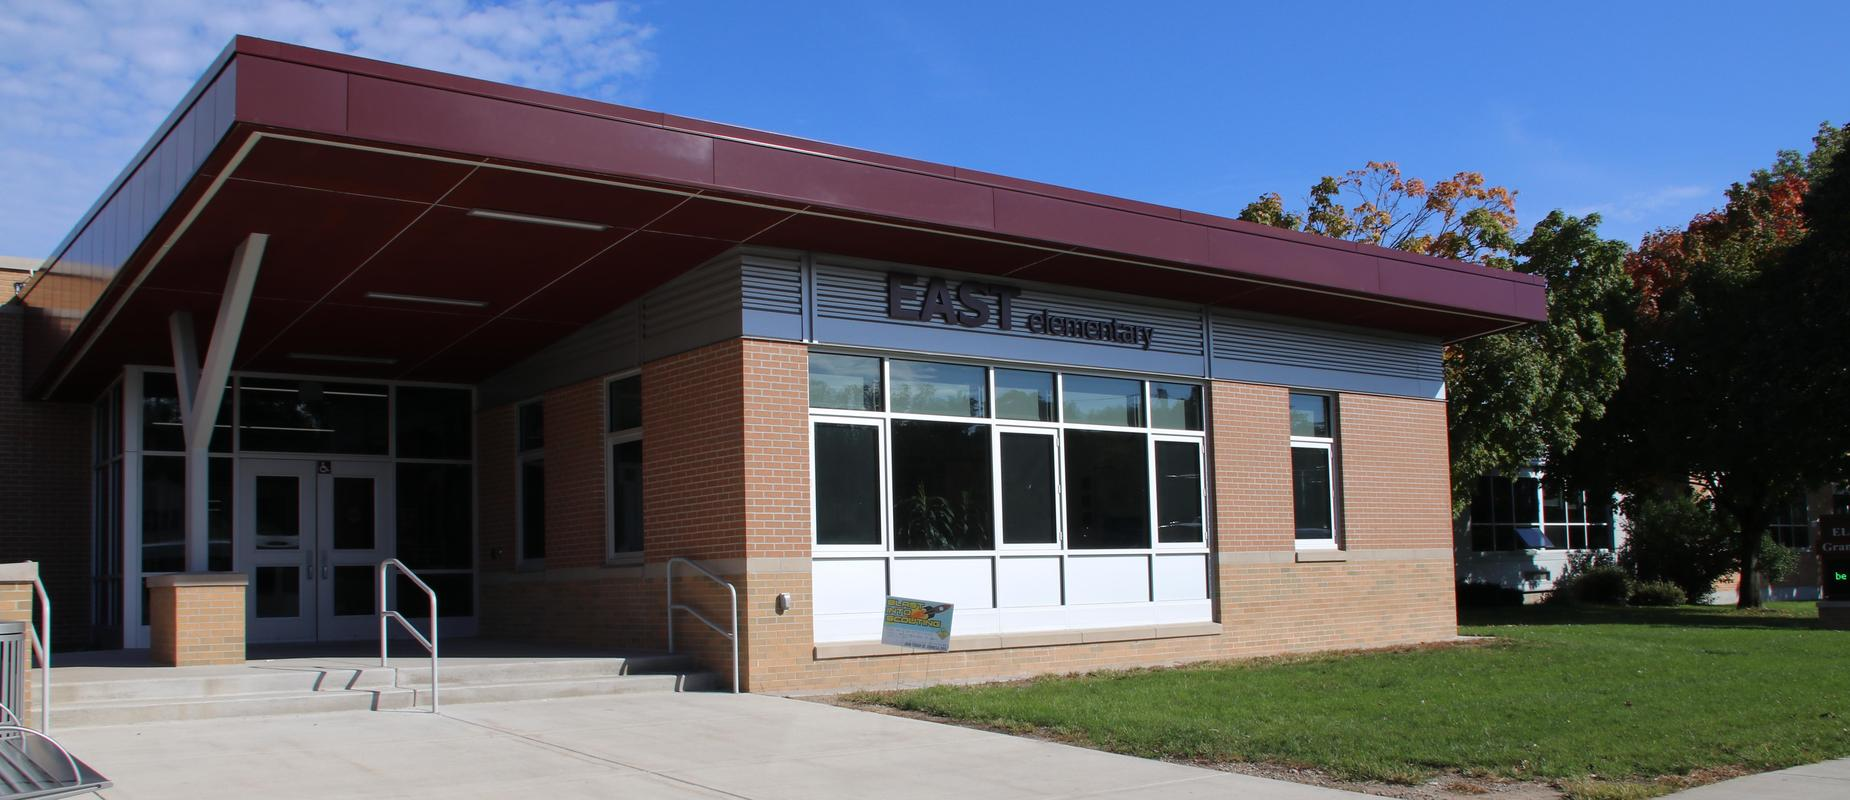 exterior of East Elementary